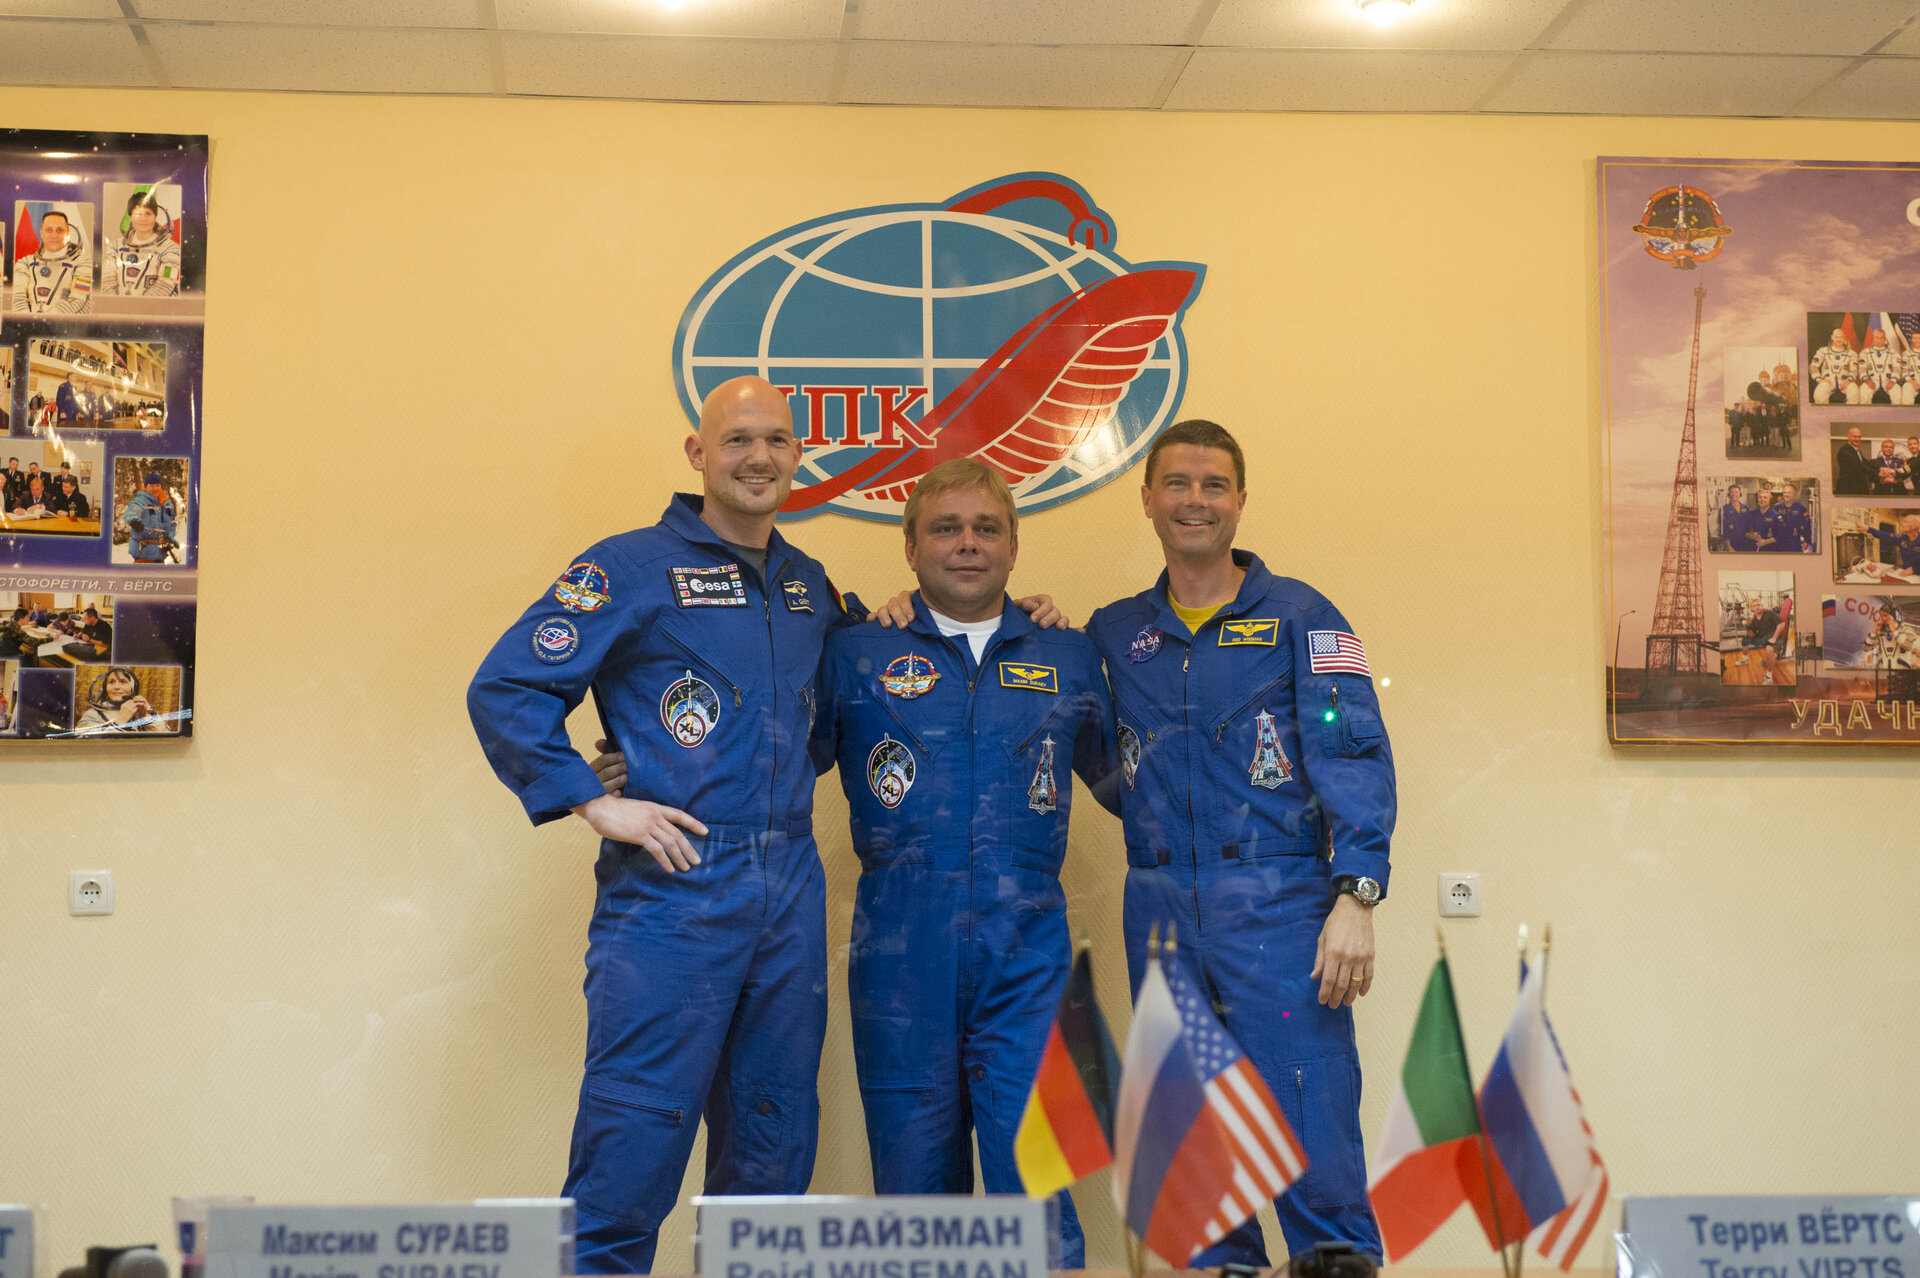 Expedition 40/41 after the crew's press conference